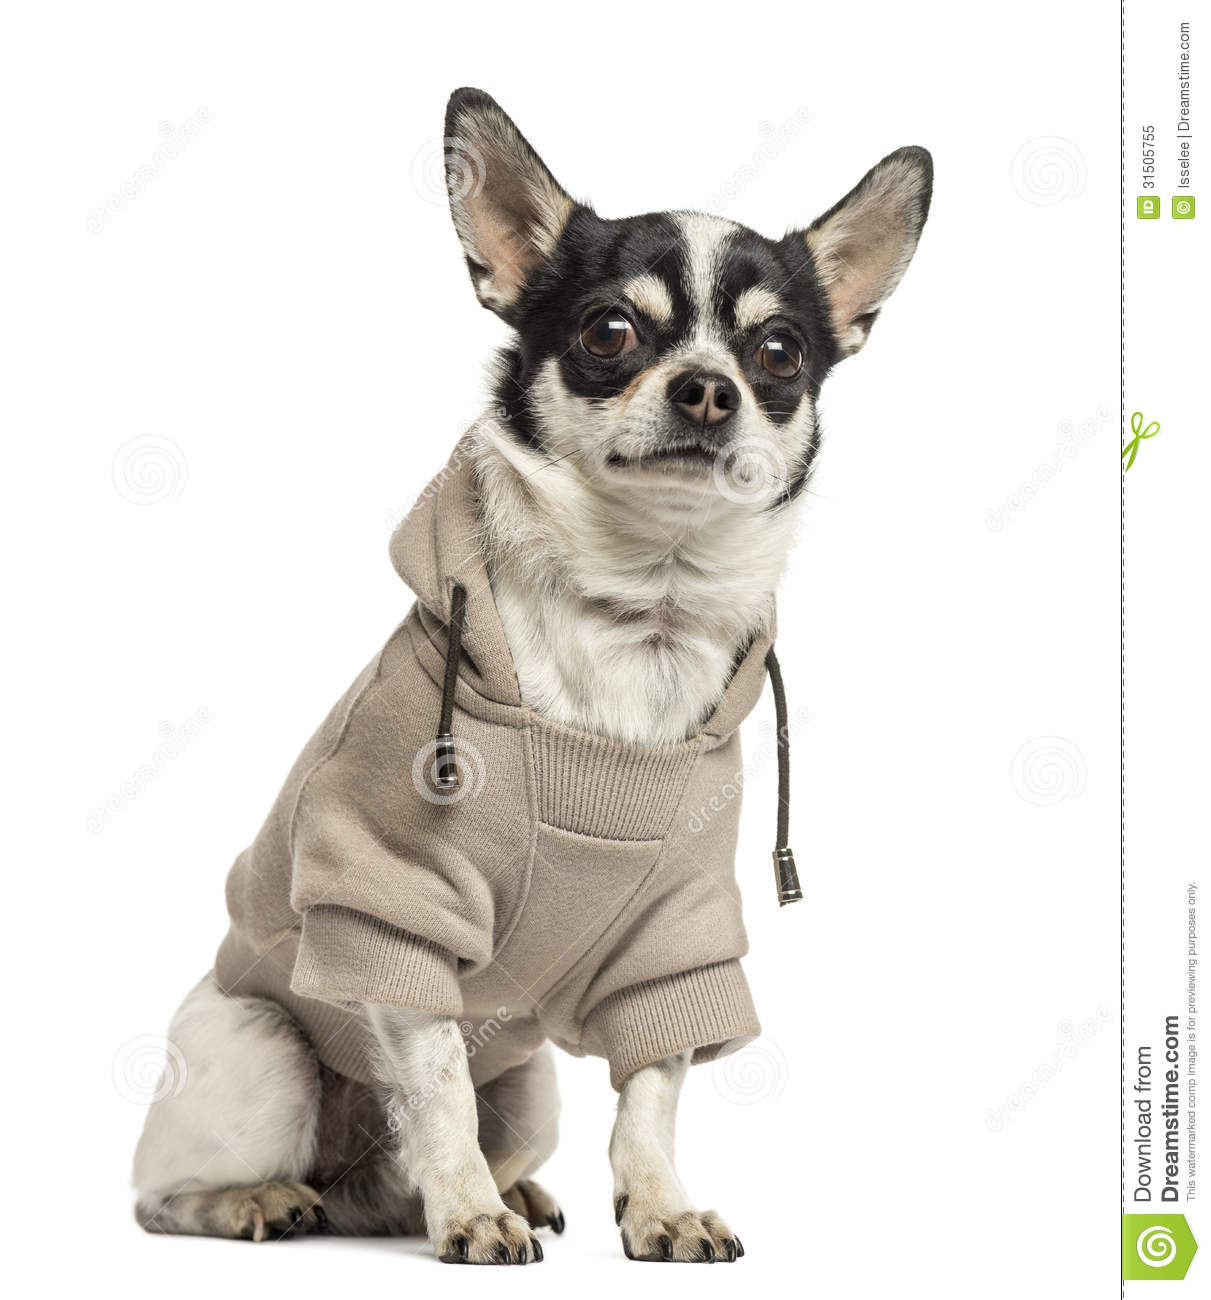 Sitting Chihuahua Wearing A Sweater 18 Months Old Stock Image